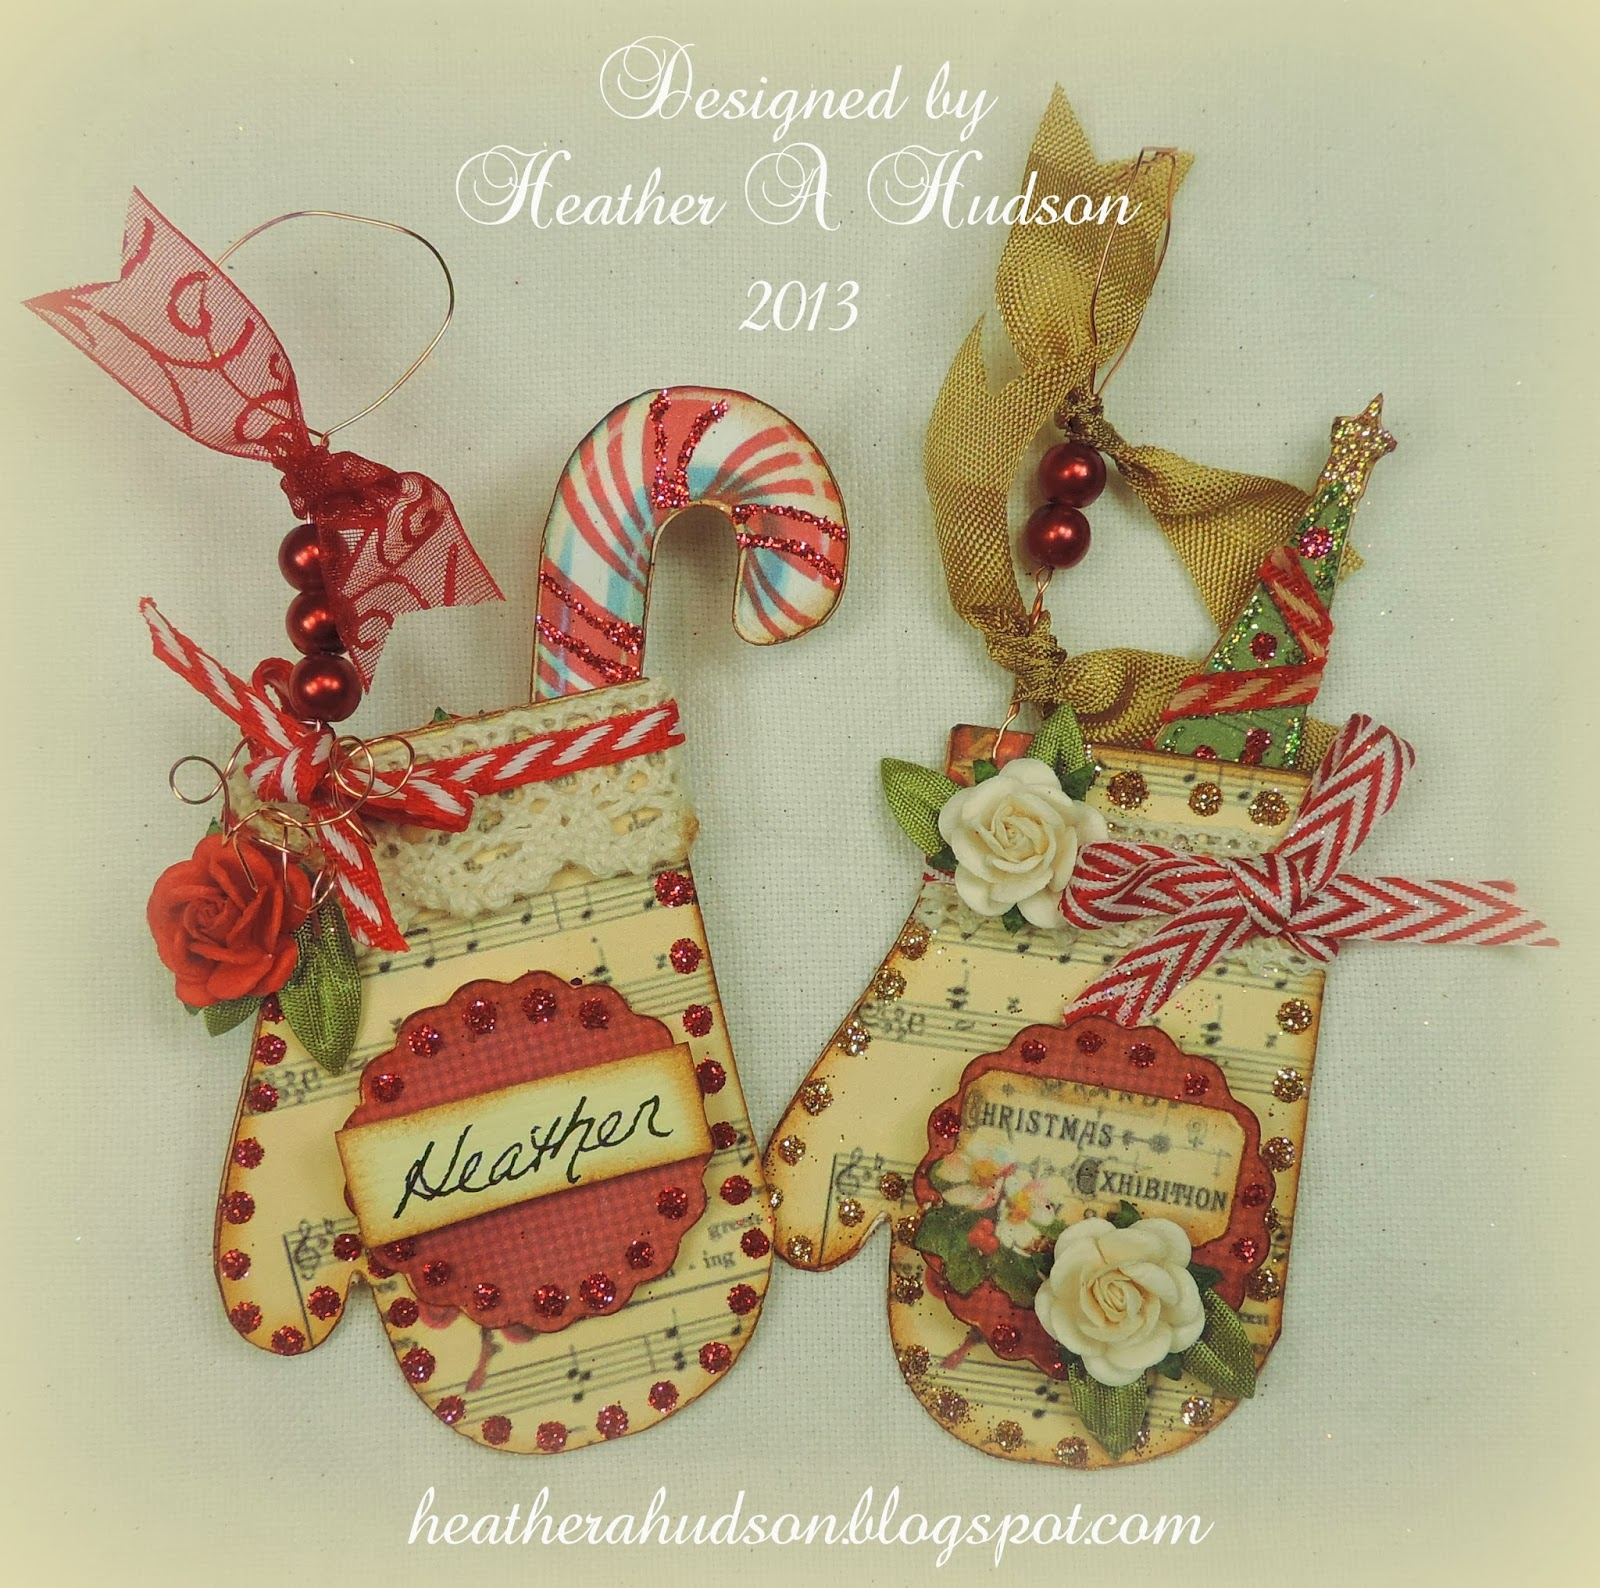 Miniature ornaments - Aren T They Just The Cutest Little Ornies If You Are Anything Like Me You Want To Touch Them And Pull All The Little Pieces Out